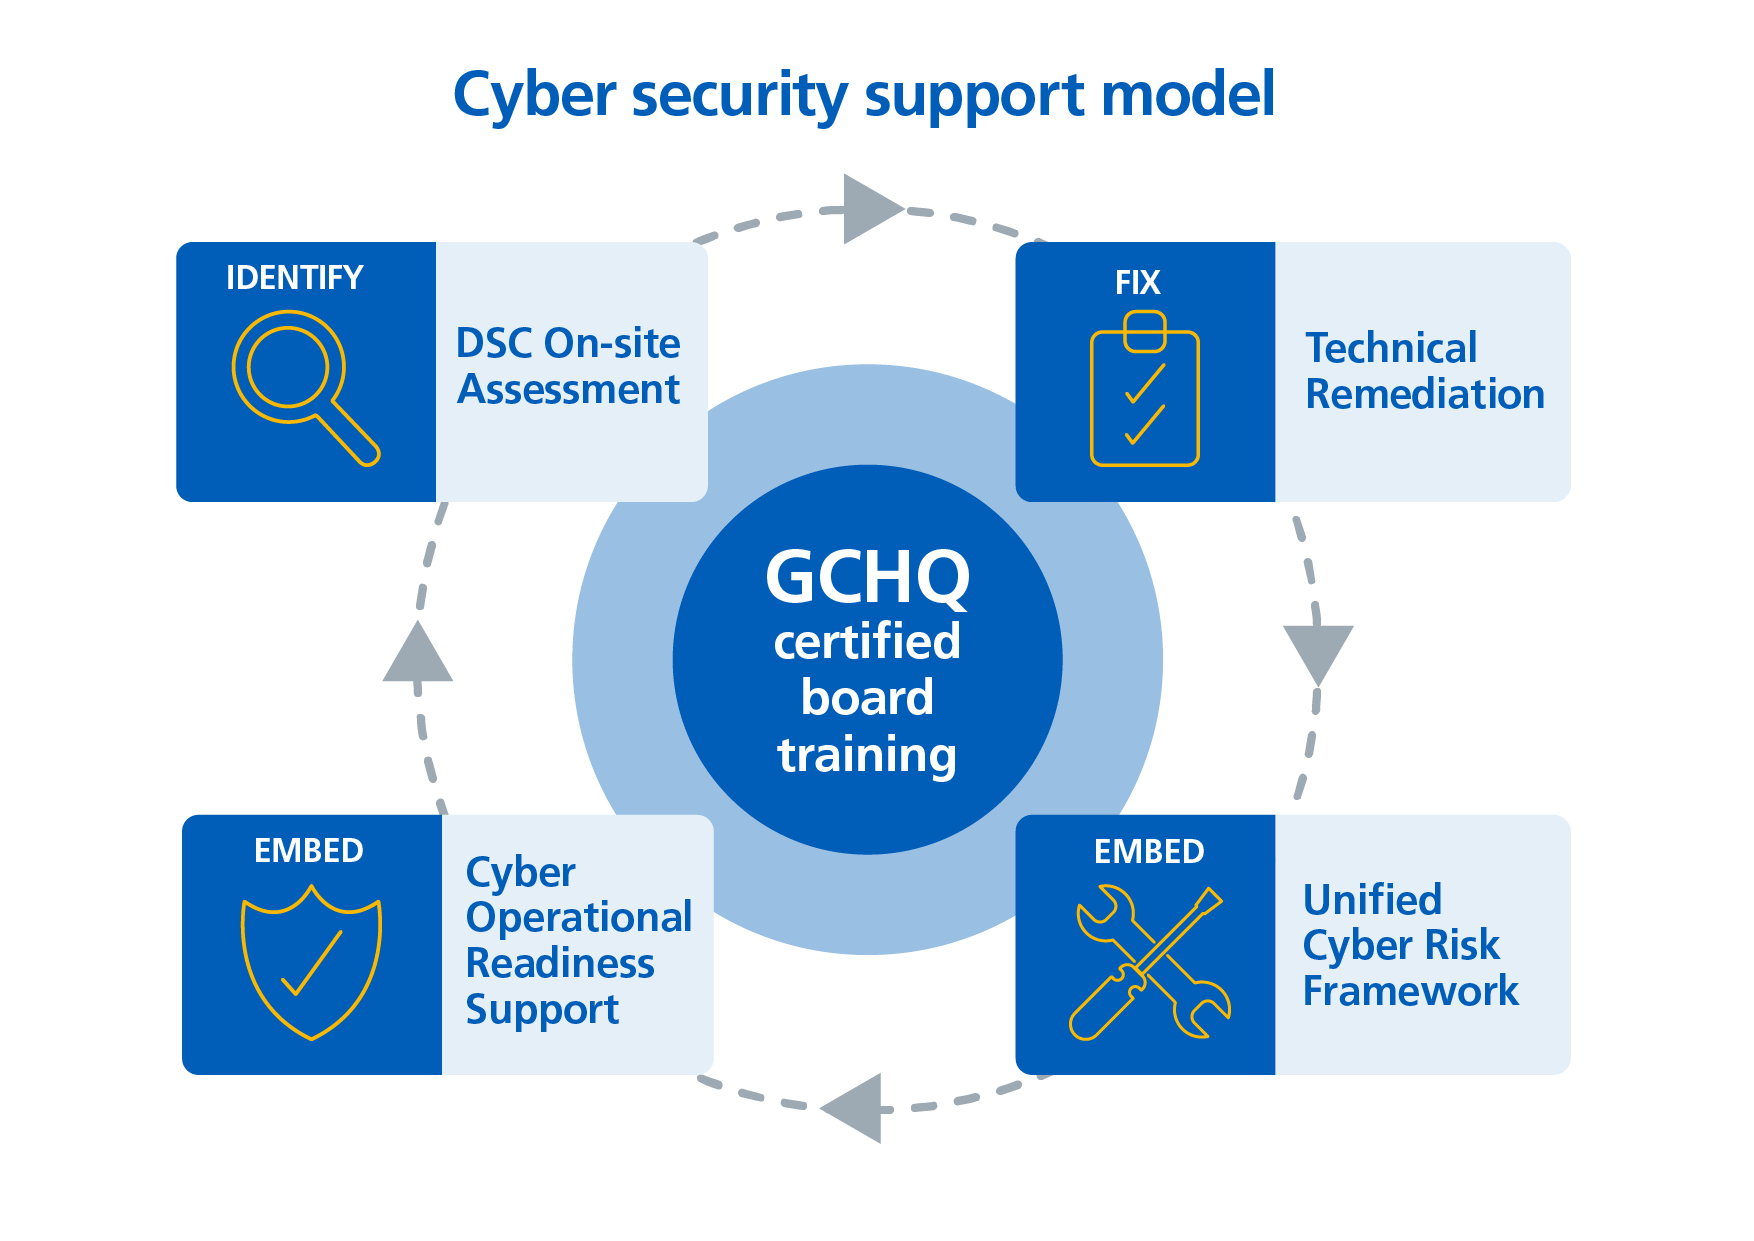 The cyber security support model